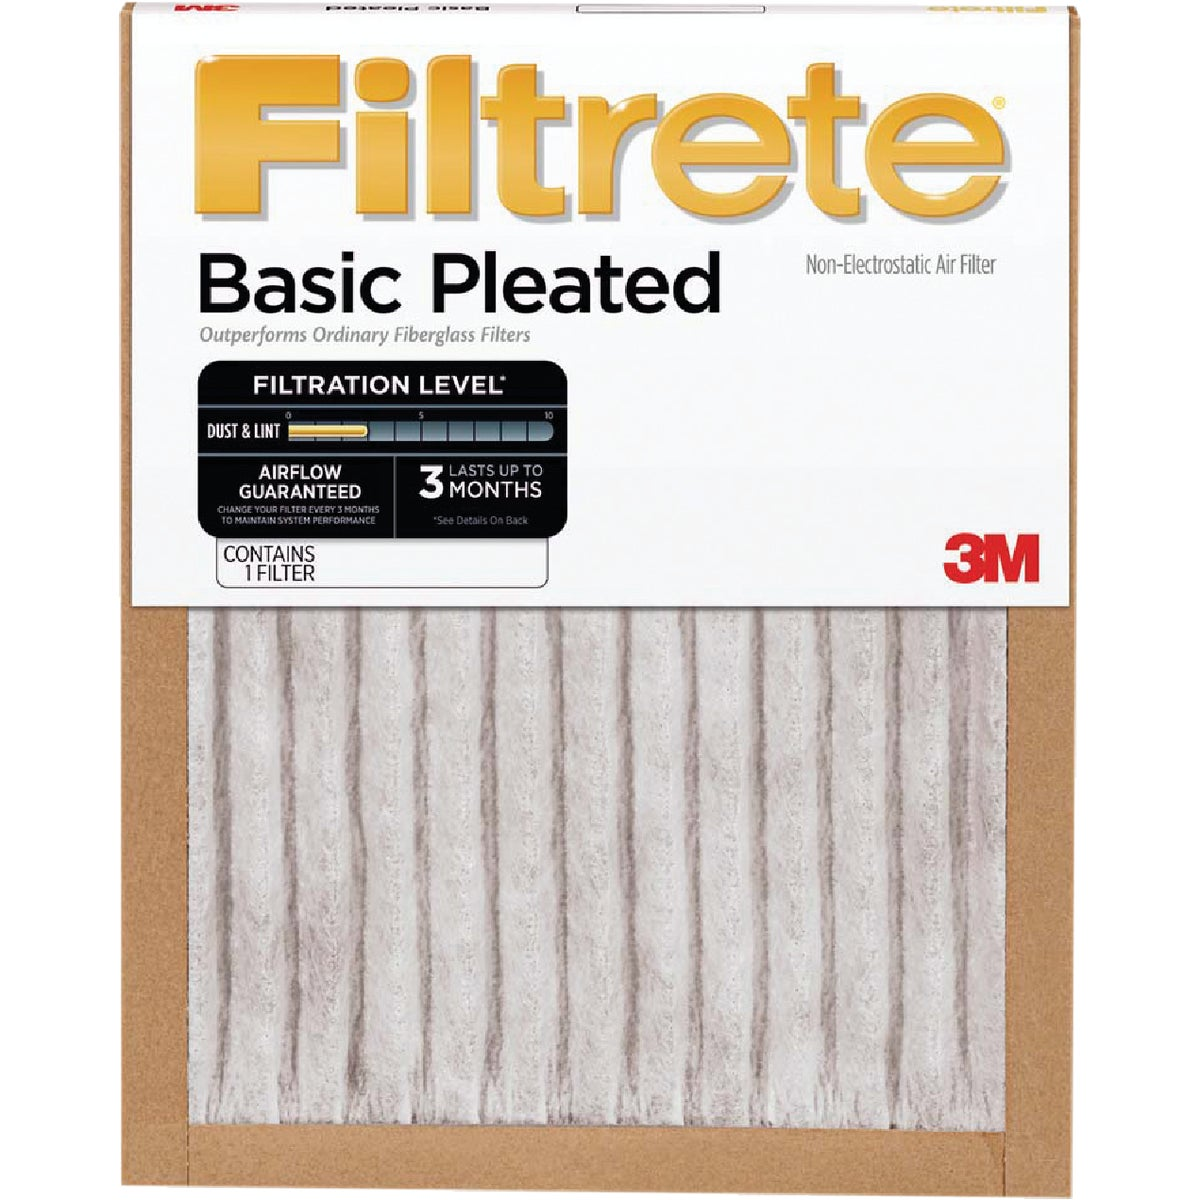 3M Filtrete 20 In. x 30 In. x 1 In. Basic Pleated 250 MPR Furnace Filter